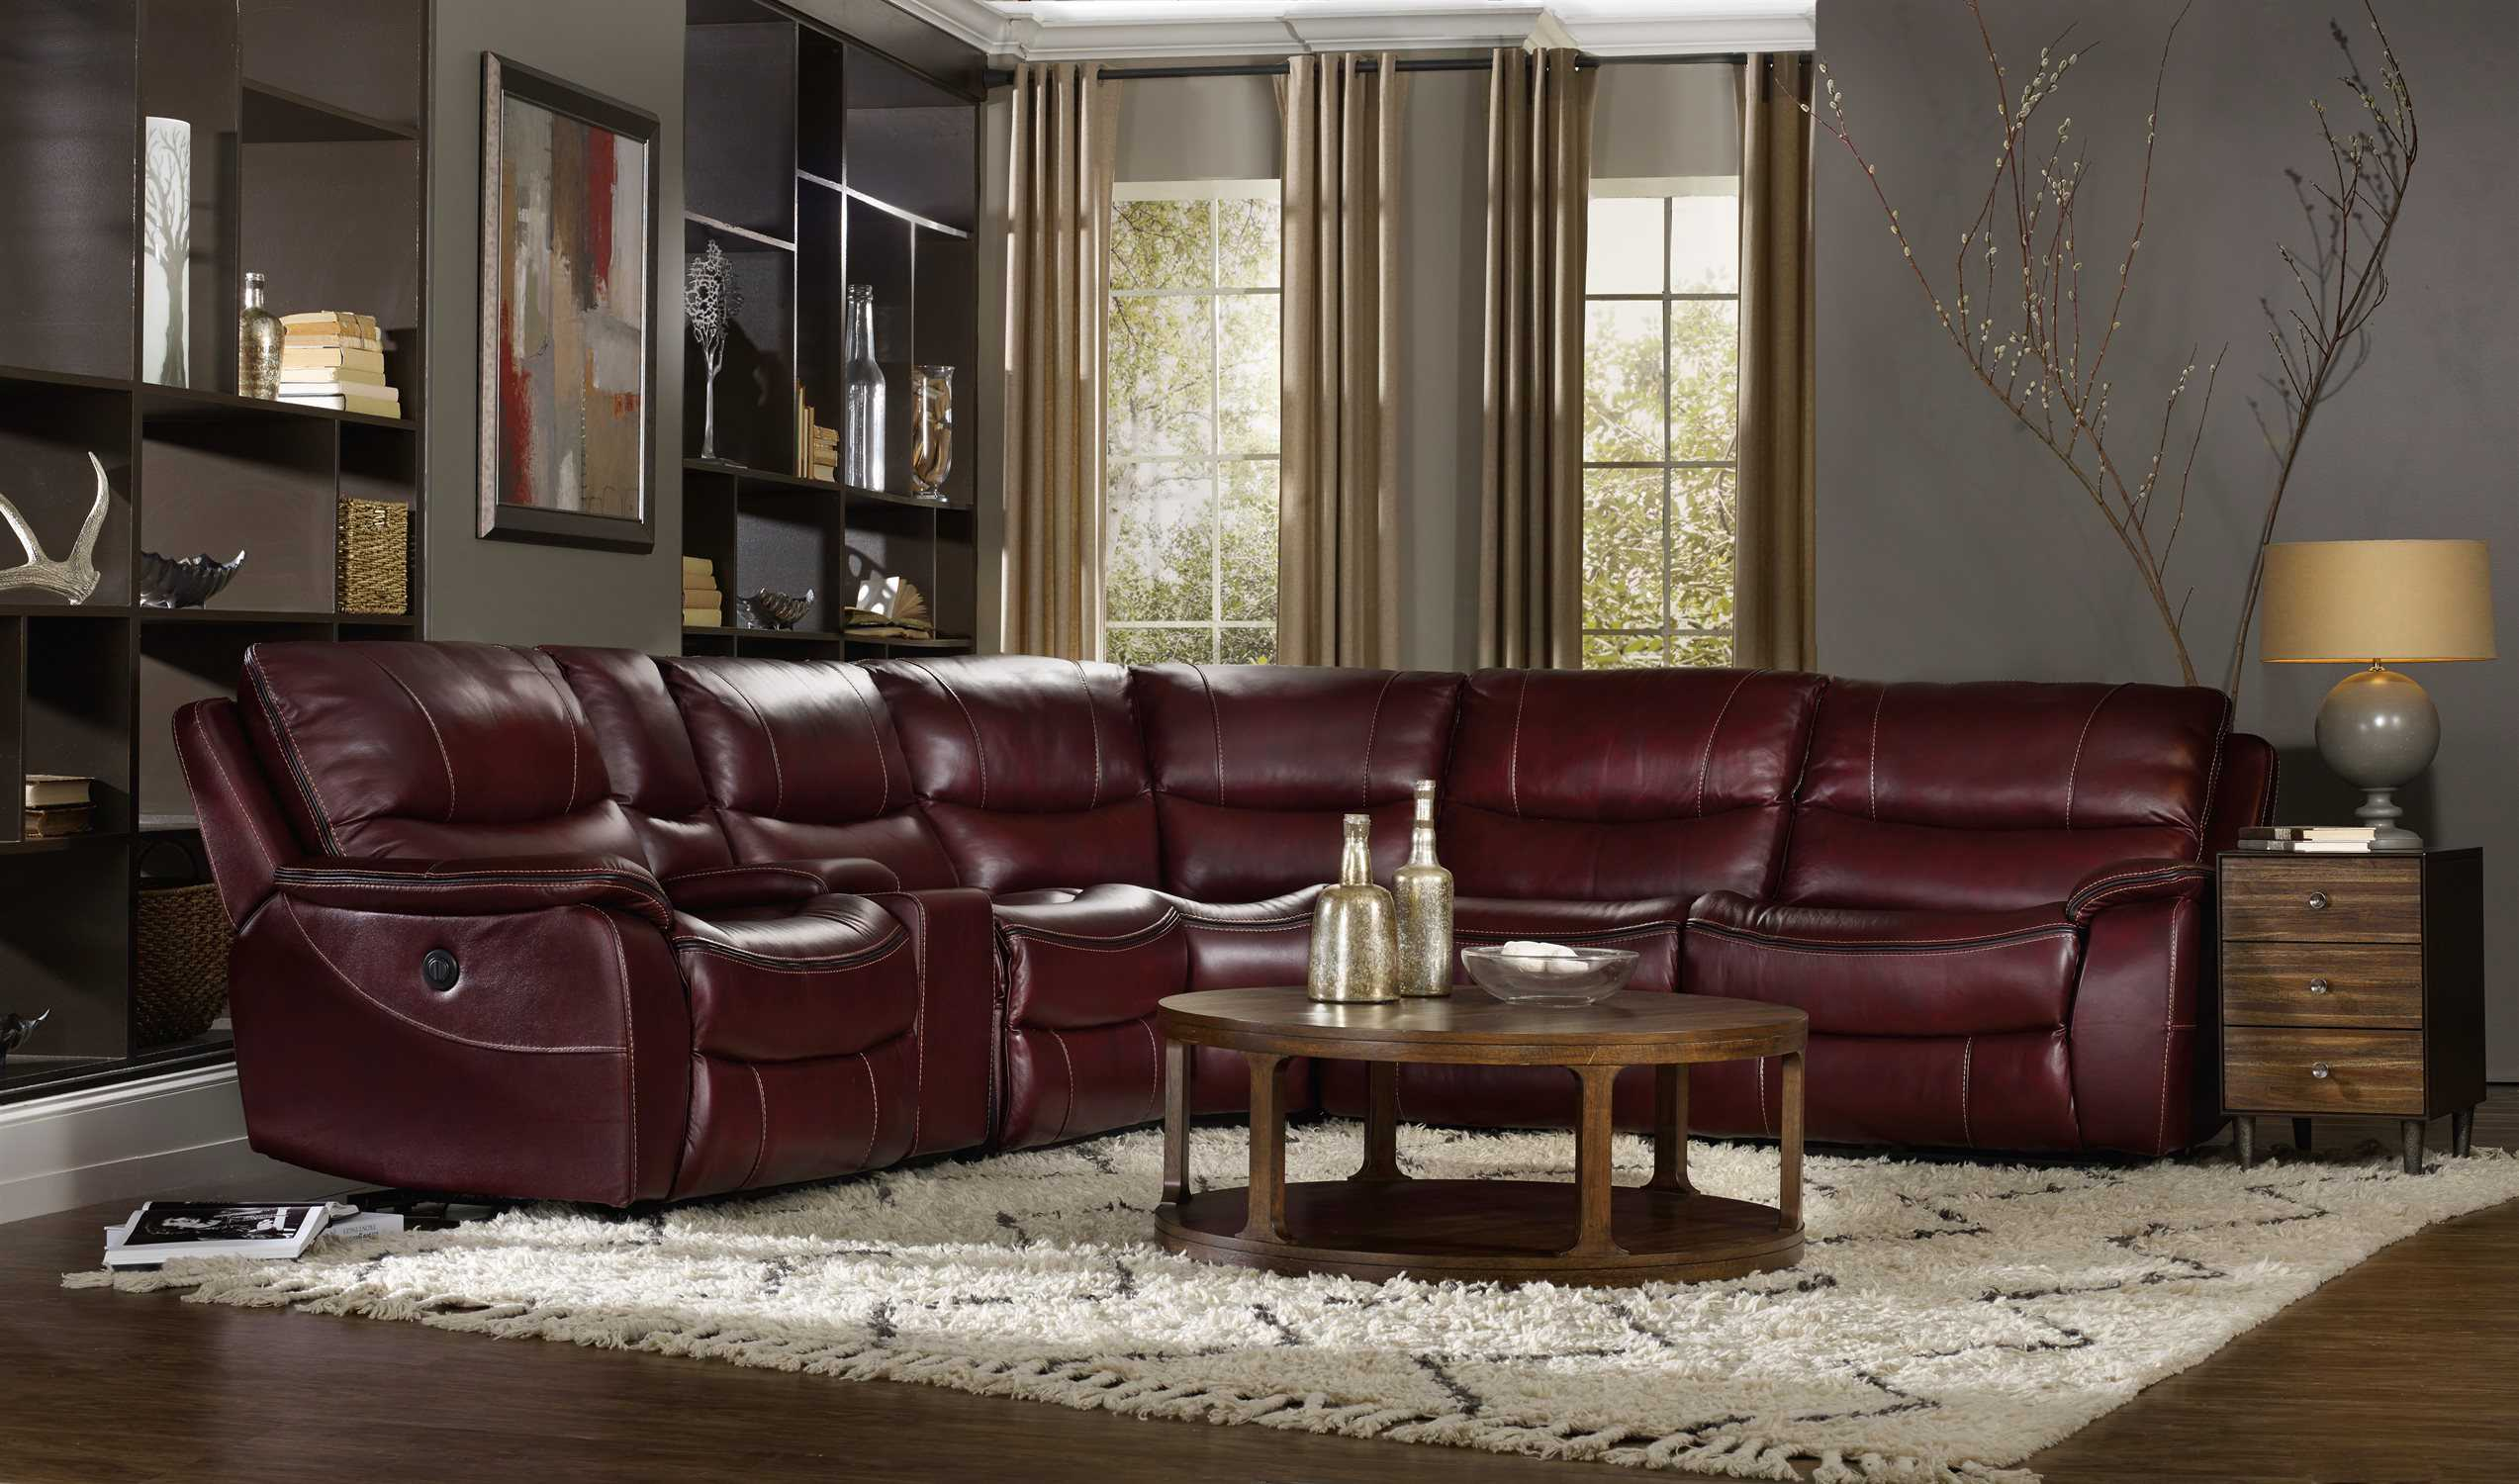 red living room set throw rugs for hooker furniture wine with black trim ...